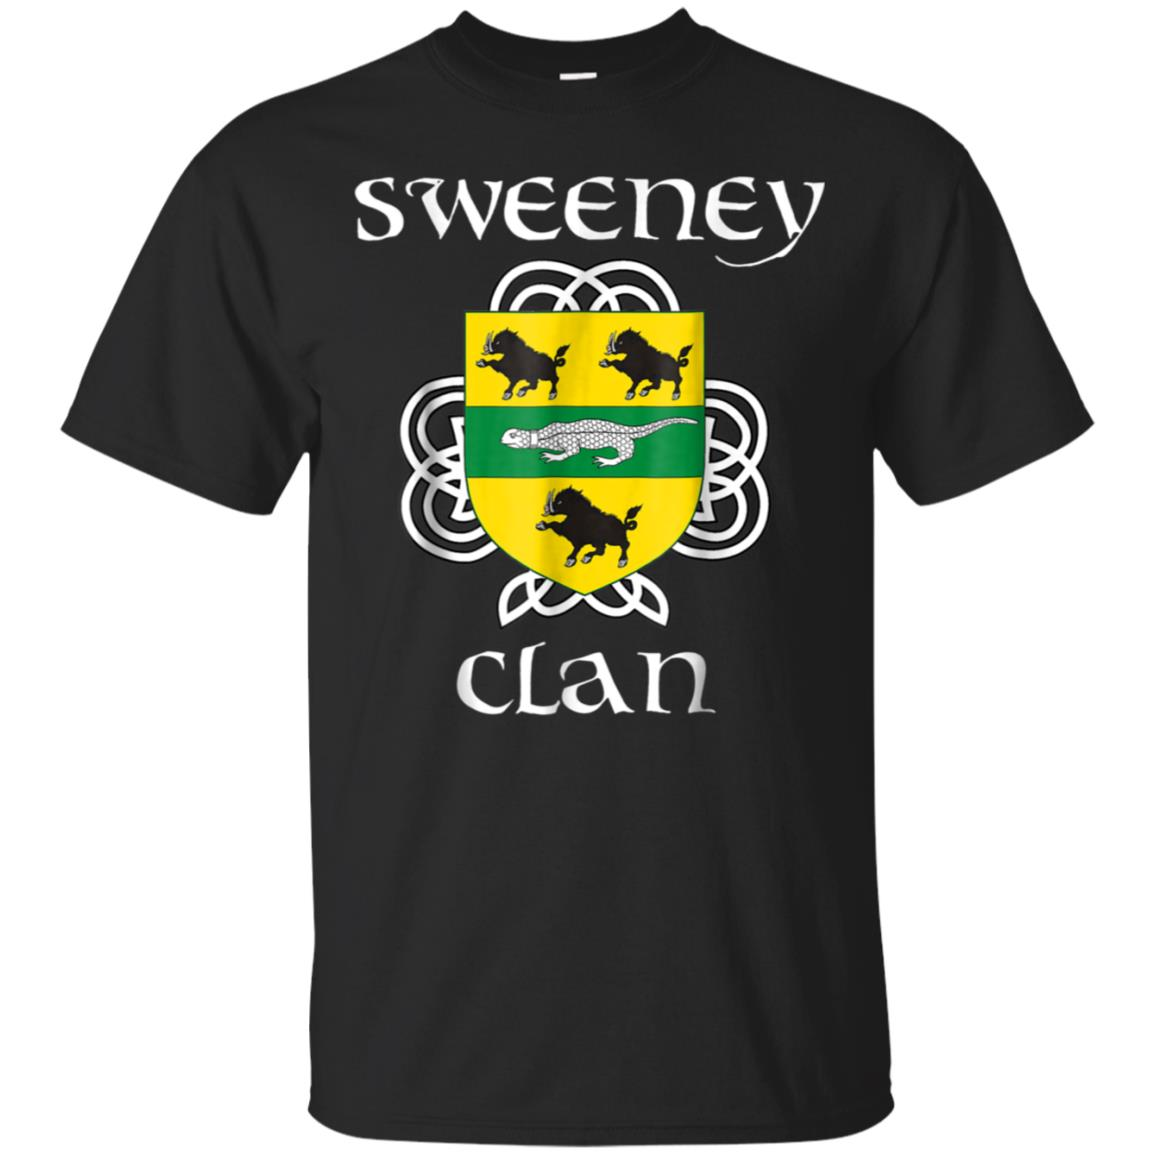 Sweeney Family Crest Shirt, Irish Reunion T Shirt 99promocode